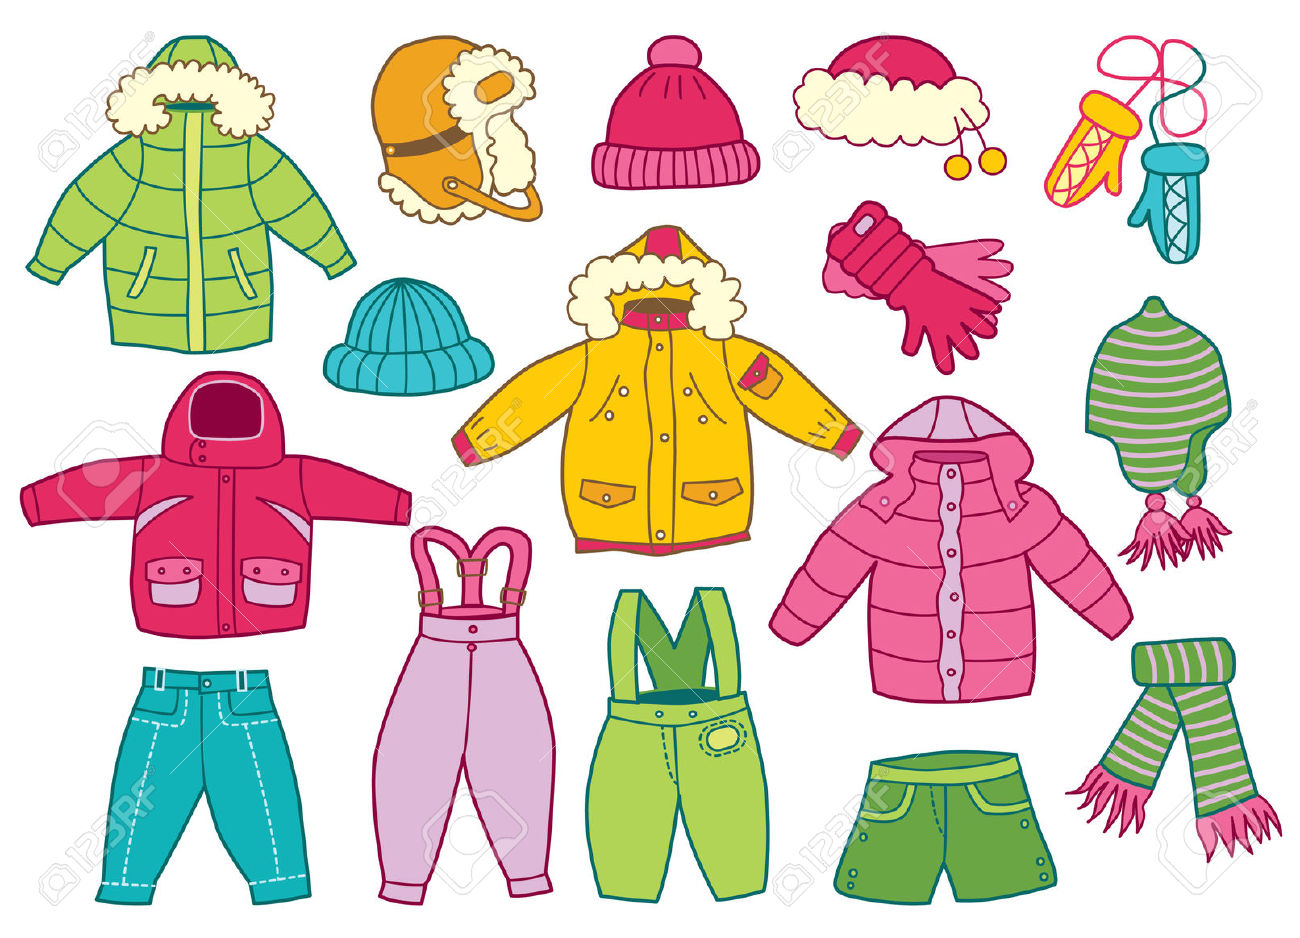 Winter clothes clipart #4